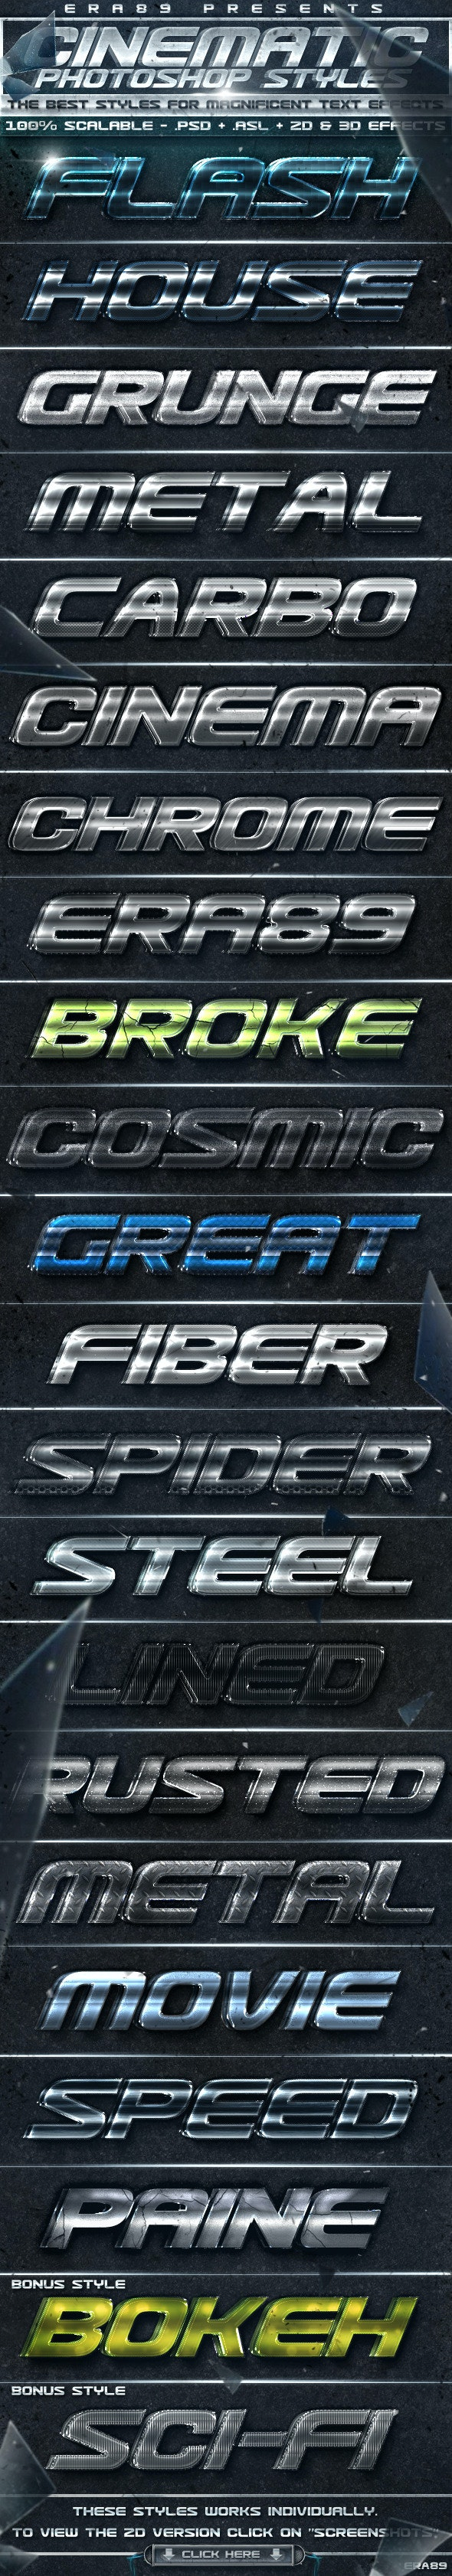 Cinematica Text Effects - PS Styles - Text Effects Styles